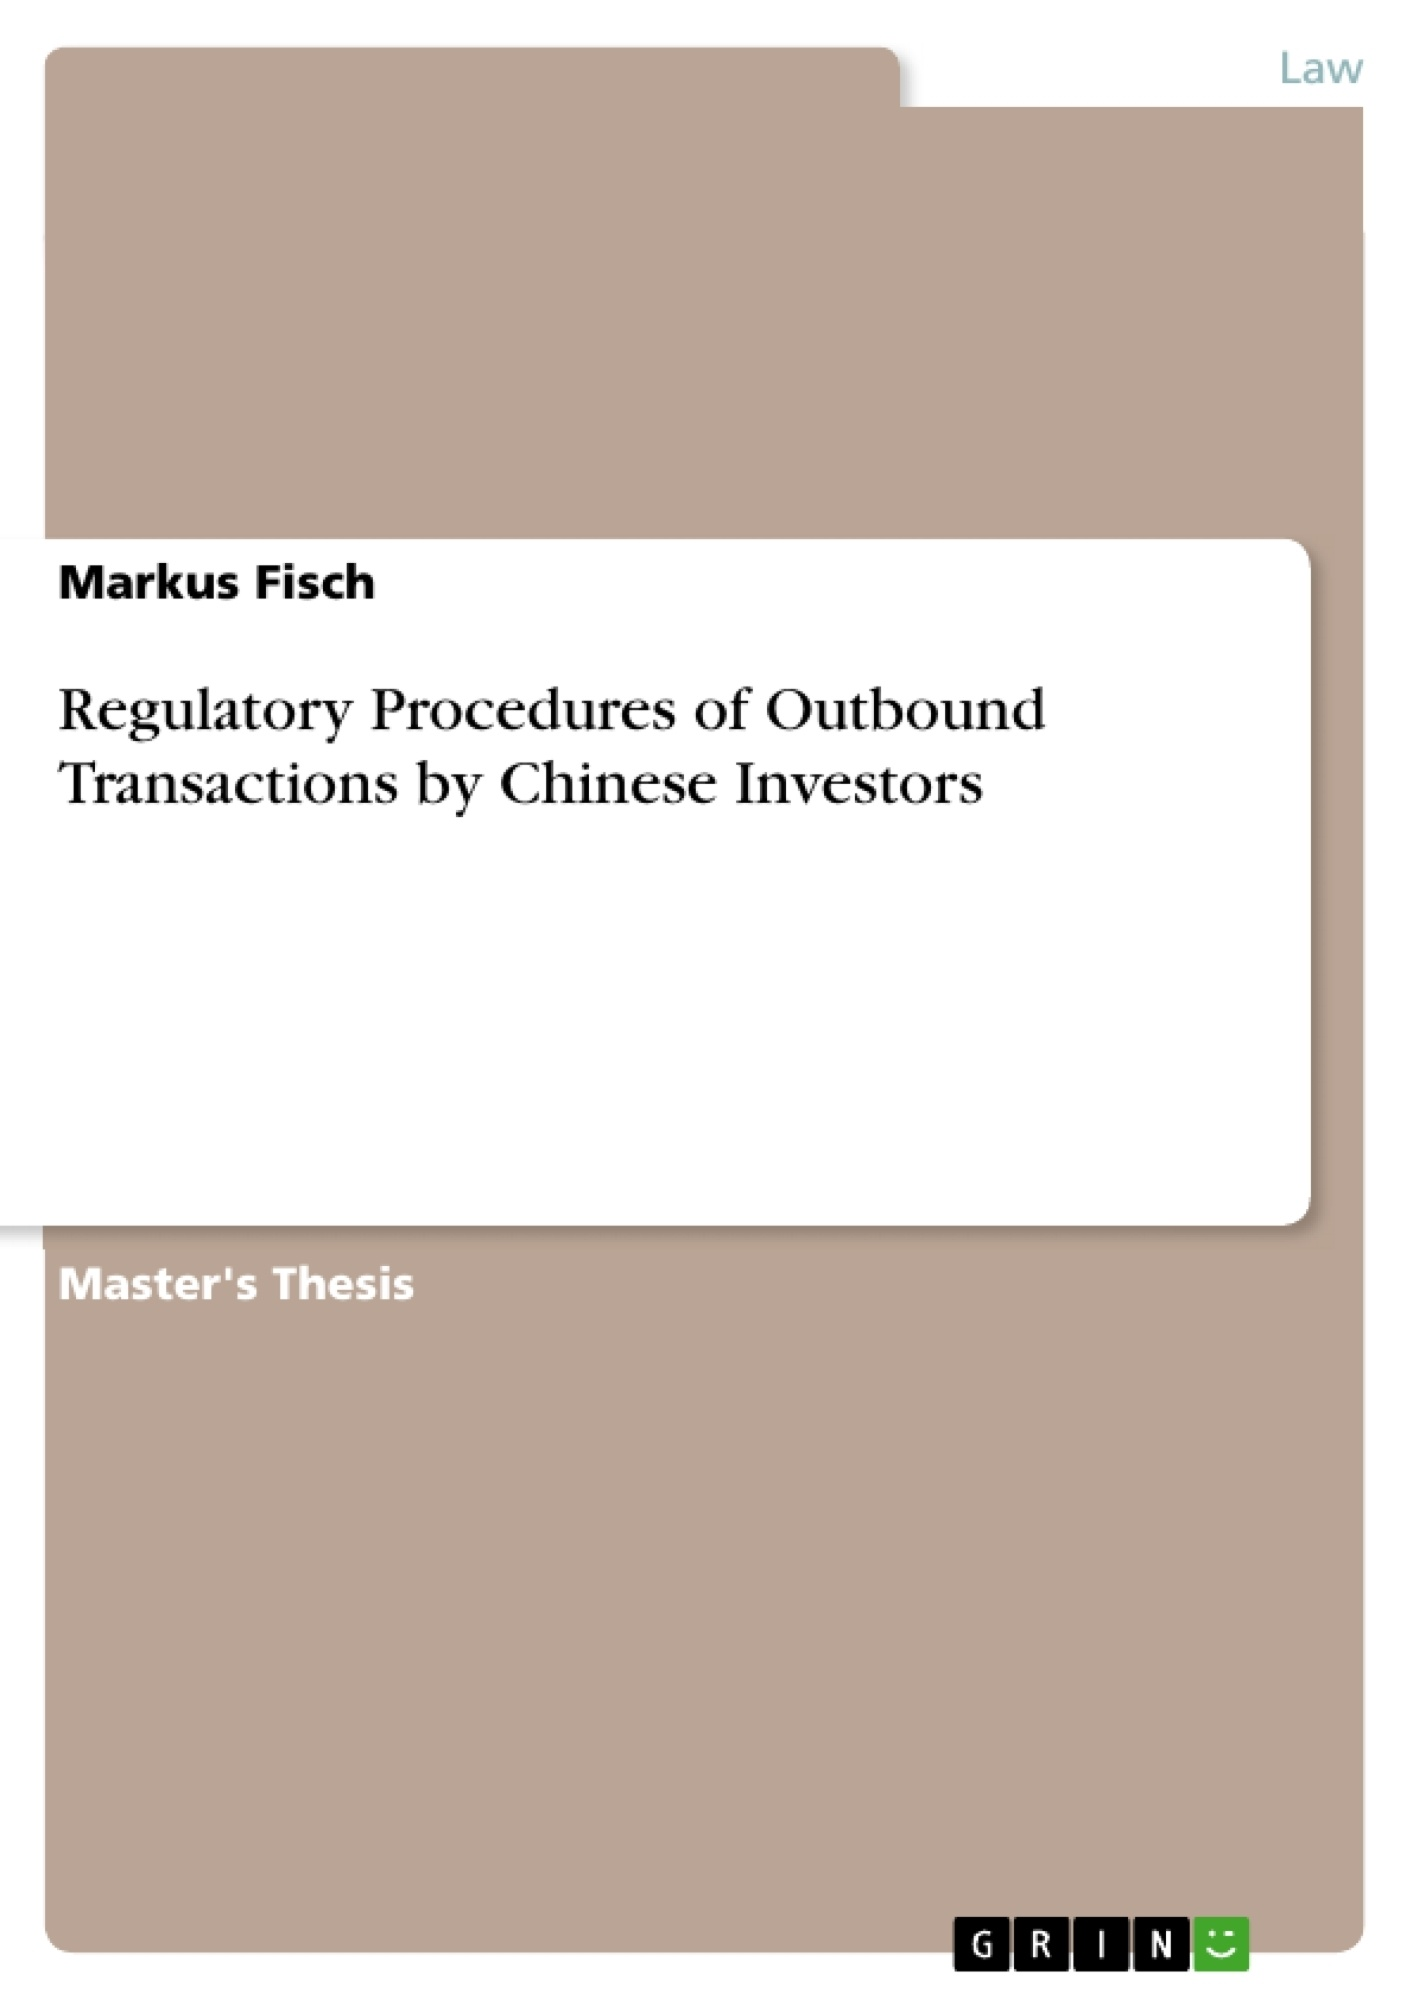 Title: Regulatory Procedures of Outbound Transactions by Chinese Investors